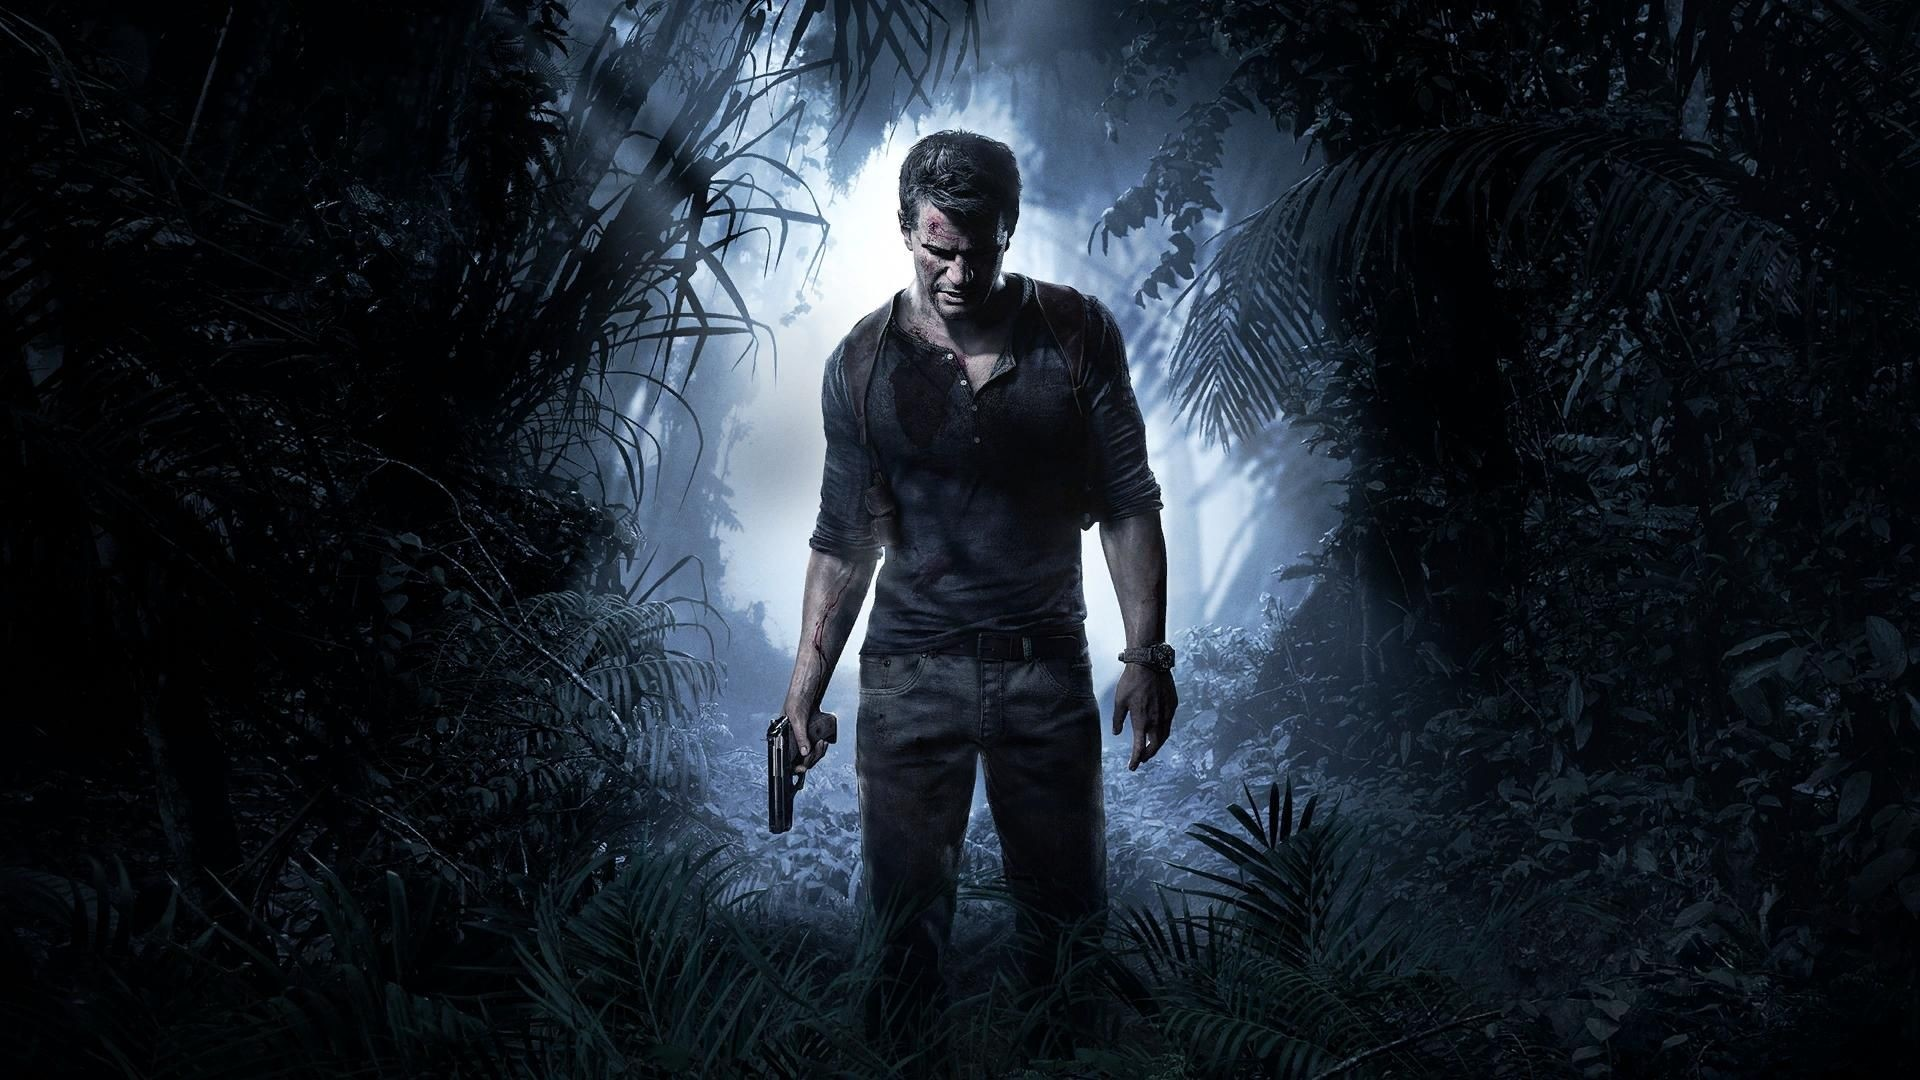 Uncharted Wallpaper (80+ images)